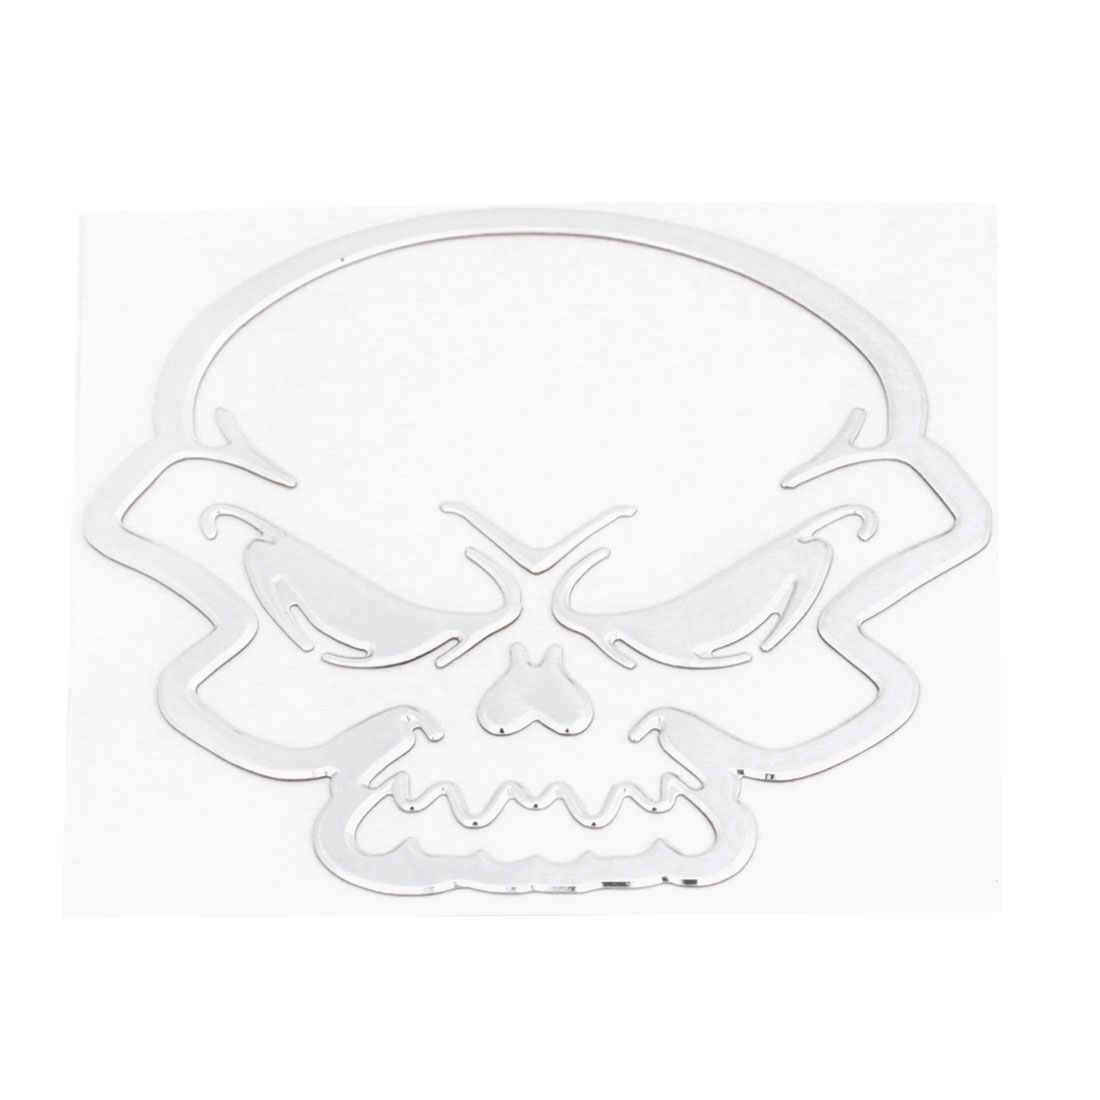 Silver Tone Skull Pattern Plastic Self Adhesive 3D Sticker Decal Ornament for Car